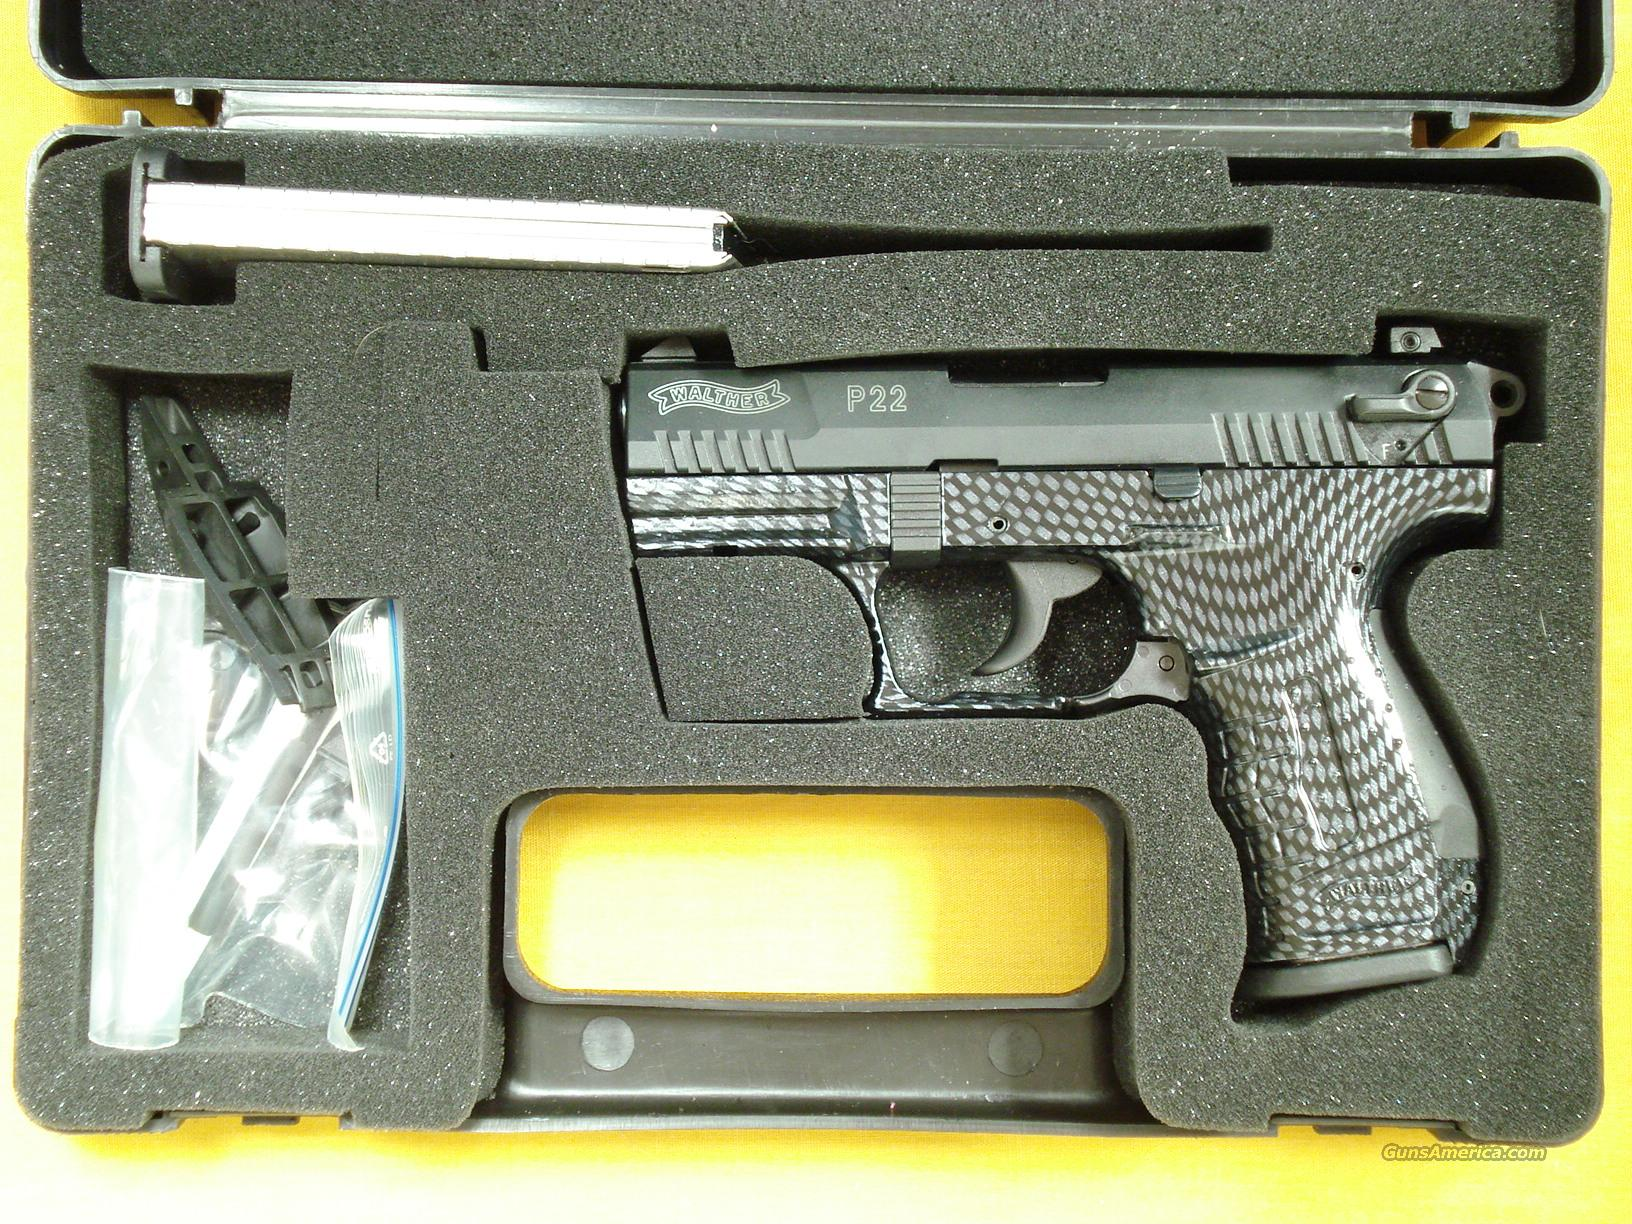 "WALTHER P22 .22LR 3 1/2"" BARREL  Guns > Pistols > Walther Pistols > Post WWII > P22"